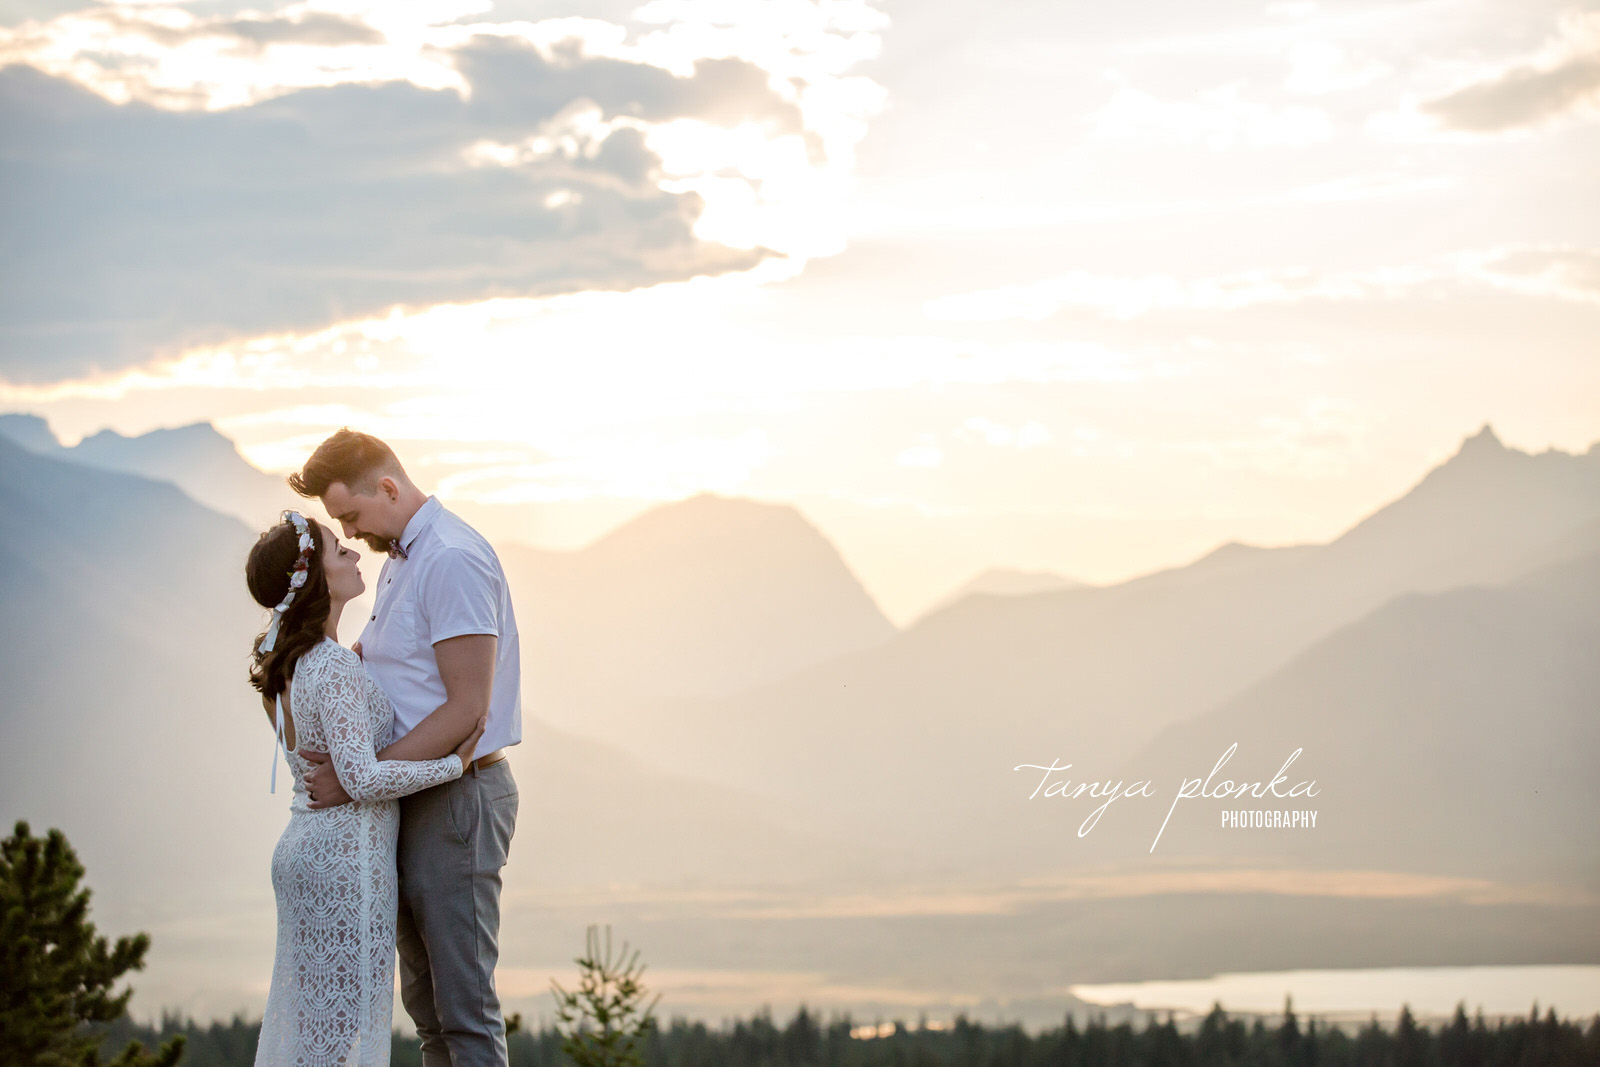 Couple embrace at sunset with mountains in the background